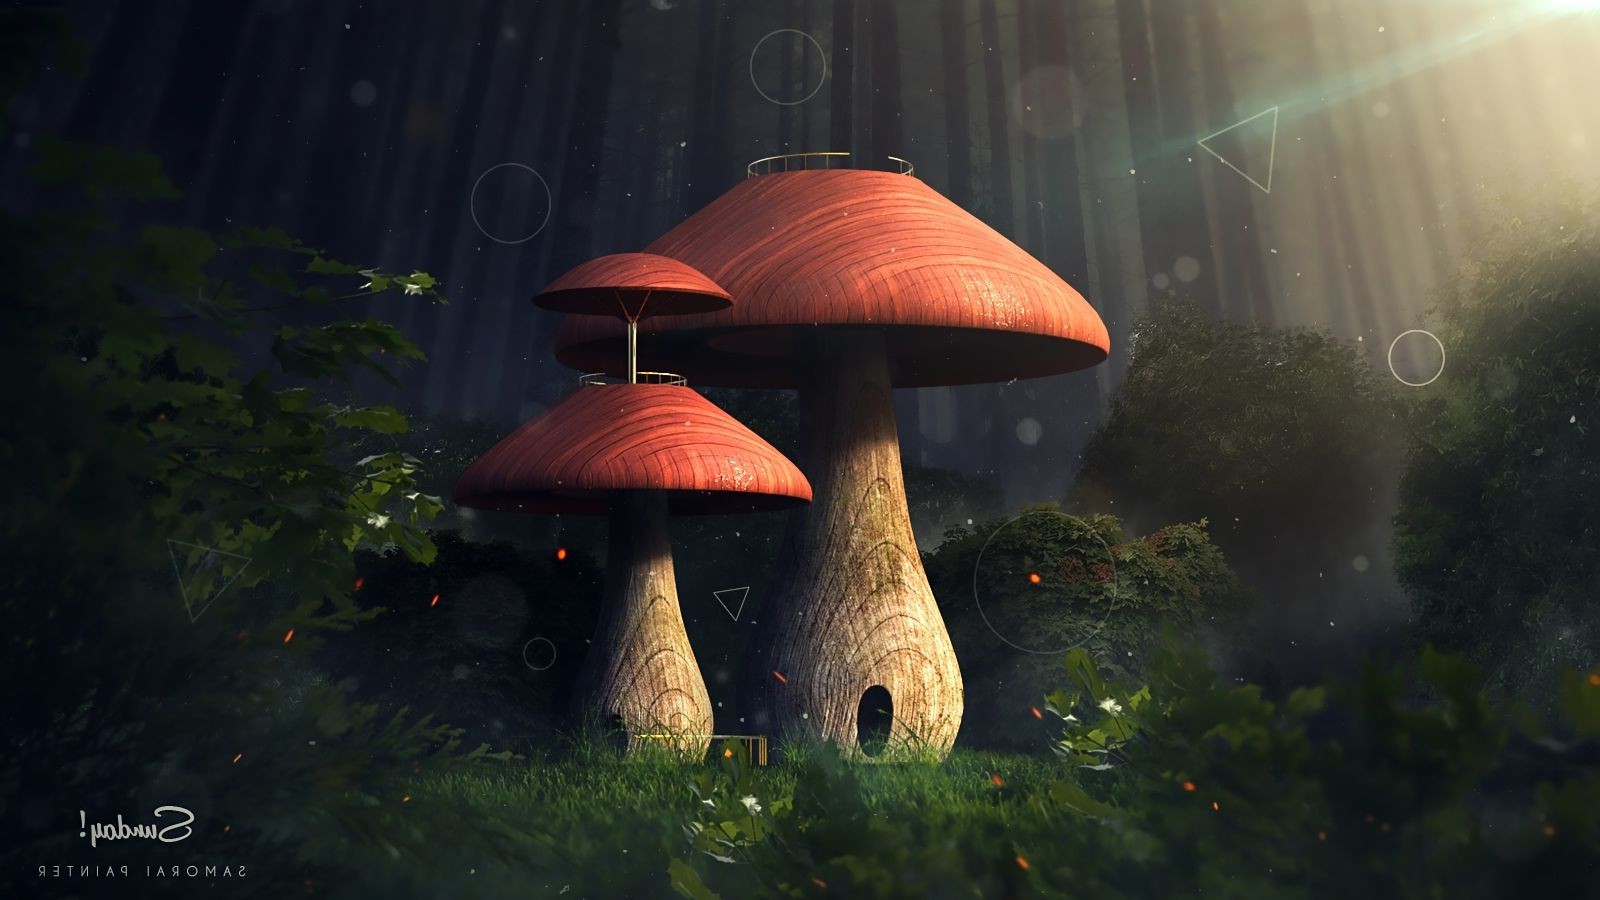 Wallpapers 1600x900 Cars Fantasy Art Nature Trees Forest Mushroom Sun Rays